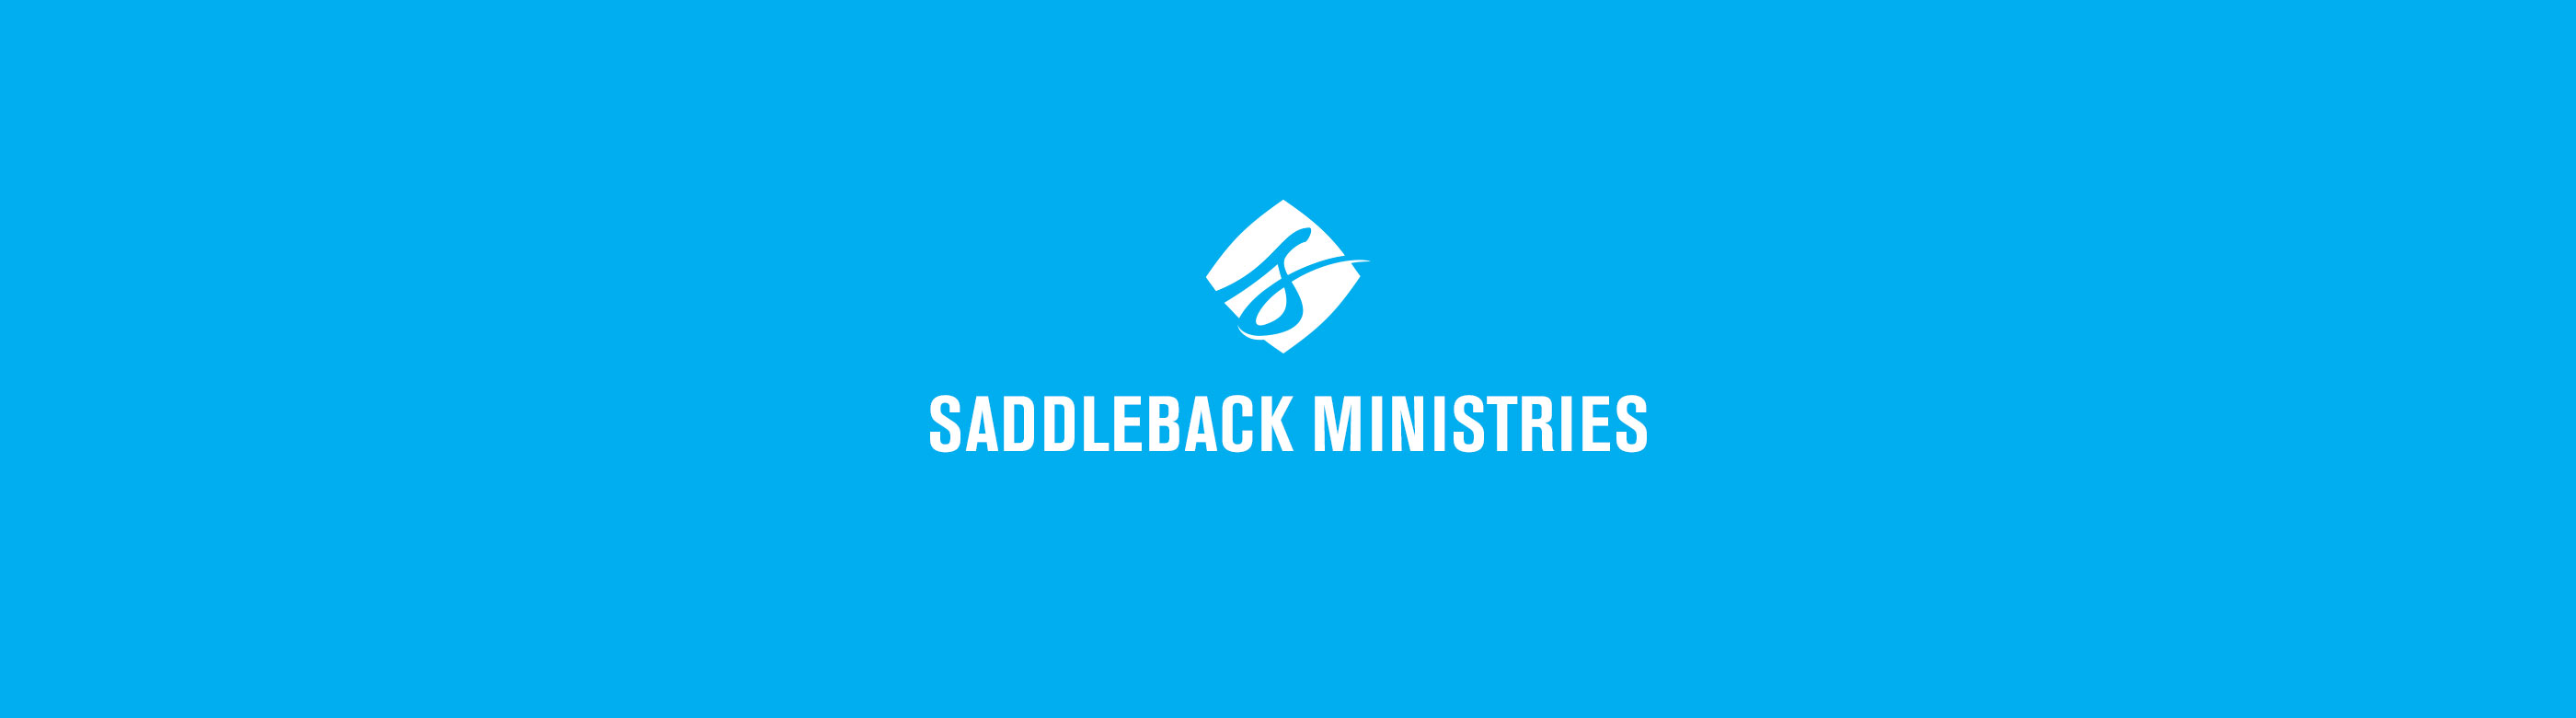 Saddleback church ministries cprfirst aid cprfirst aid 1betcityfo Image collections